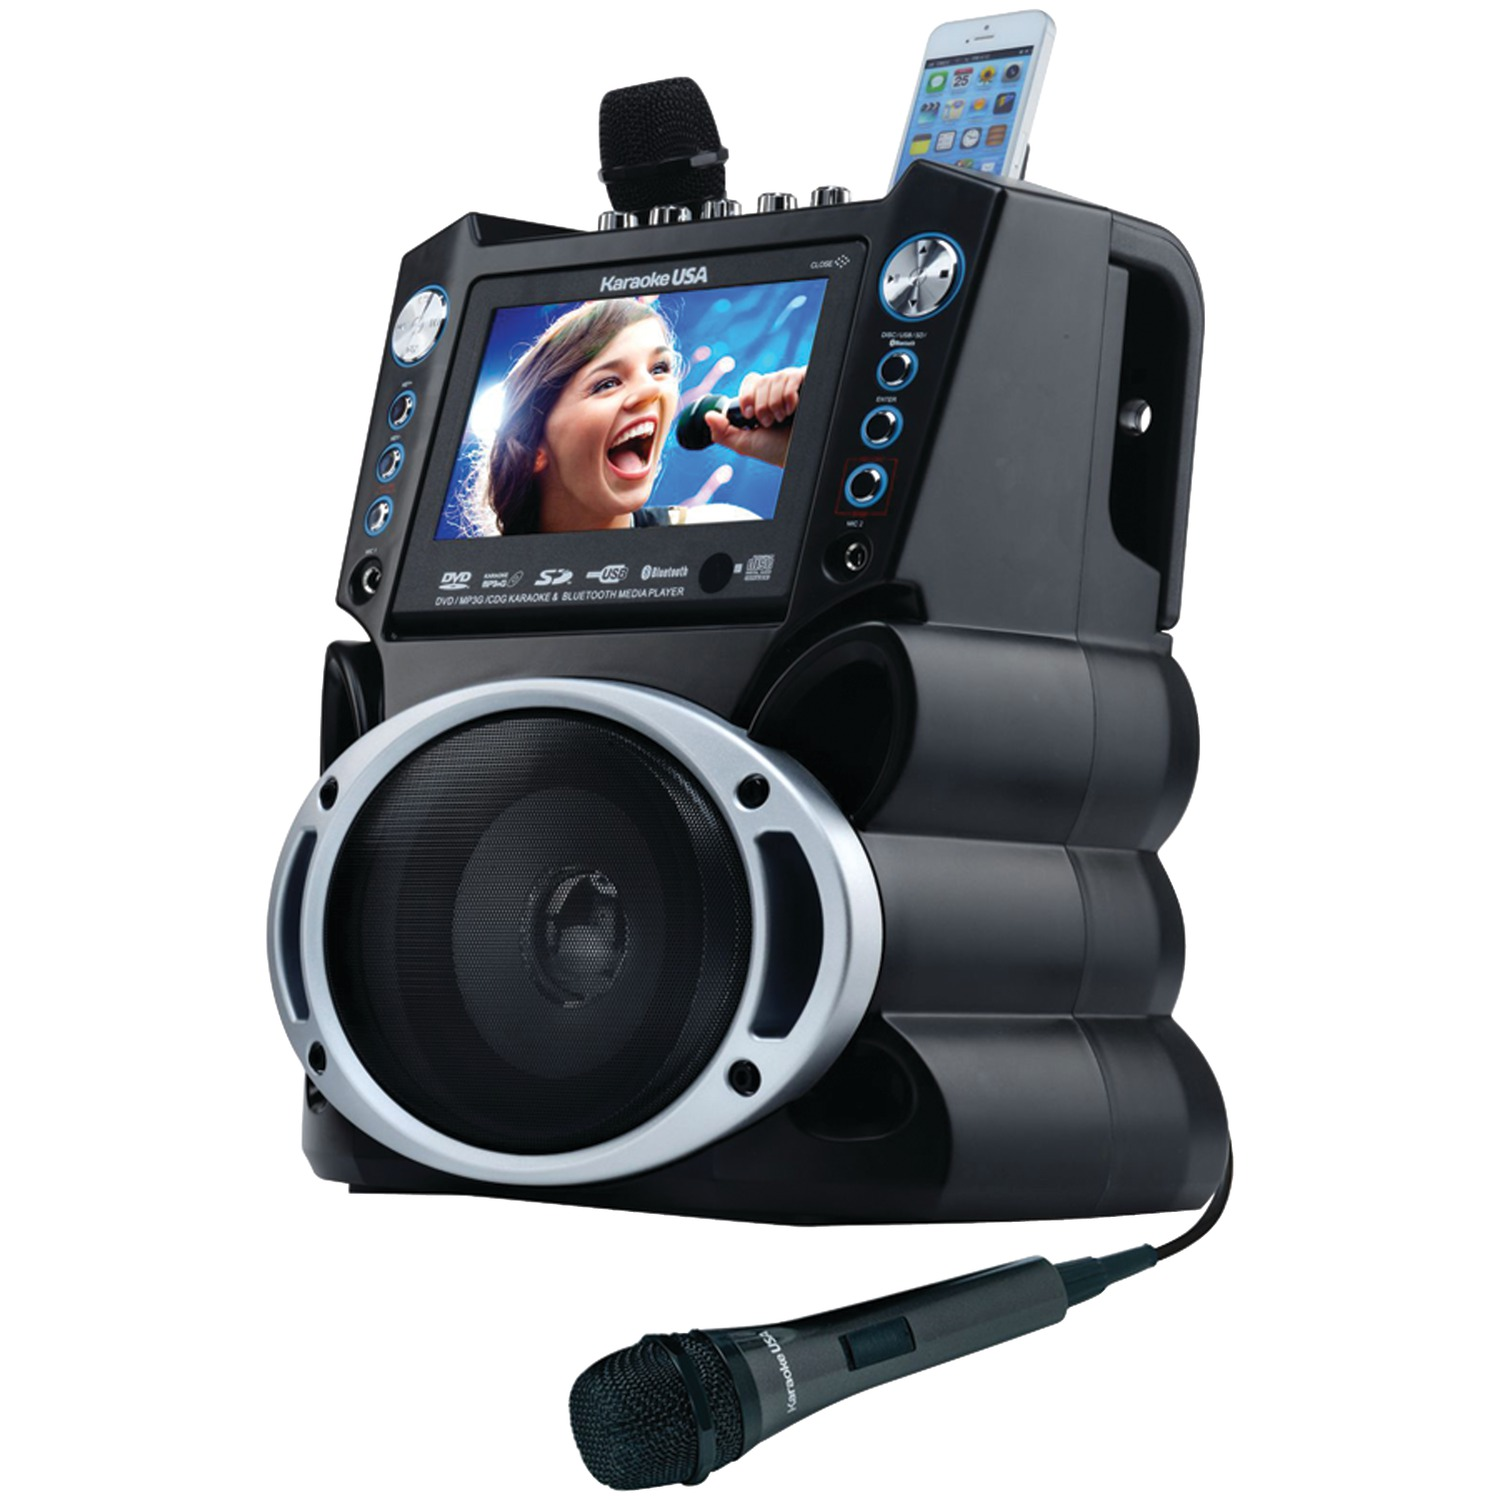 """Karaoke USA GF840 Complete Bluetooth Karaoke System - 35 Watt Power Output includes 2 Microphones, Remote Control, 7"""" Color Screen, Record Function. Plays DVD/CDG/MP3G / USB /SD"""